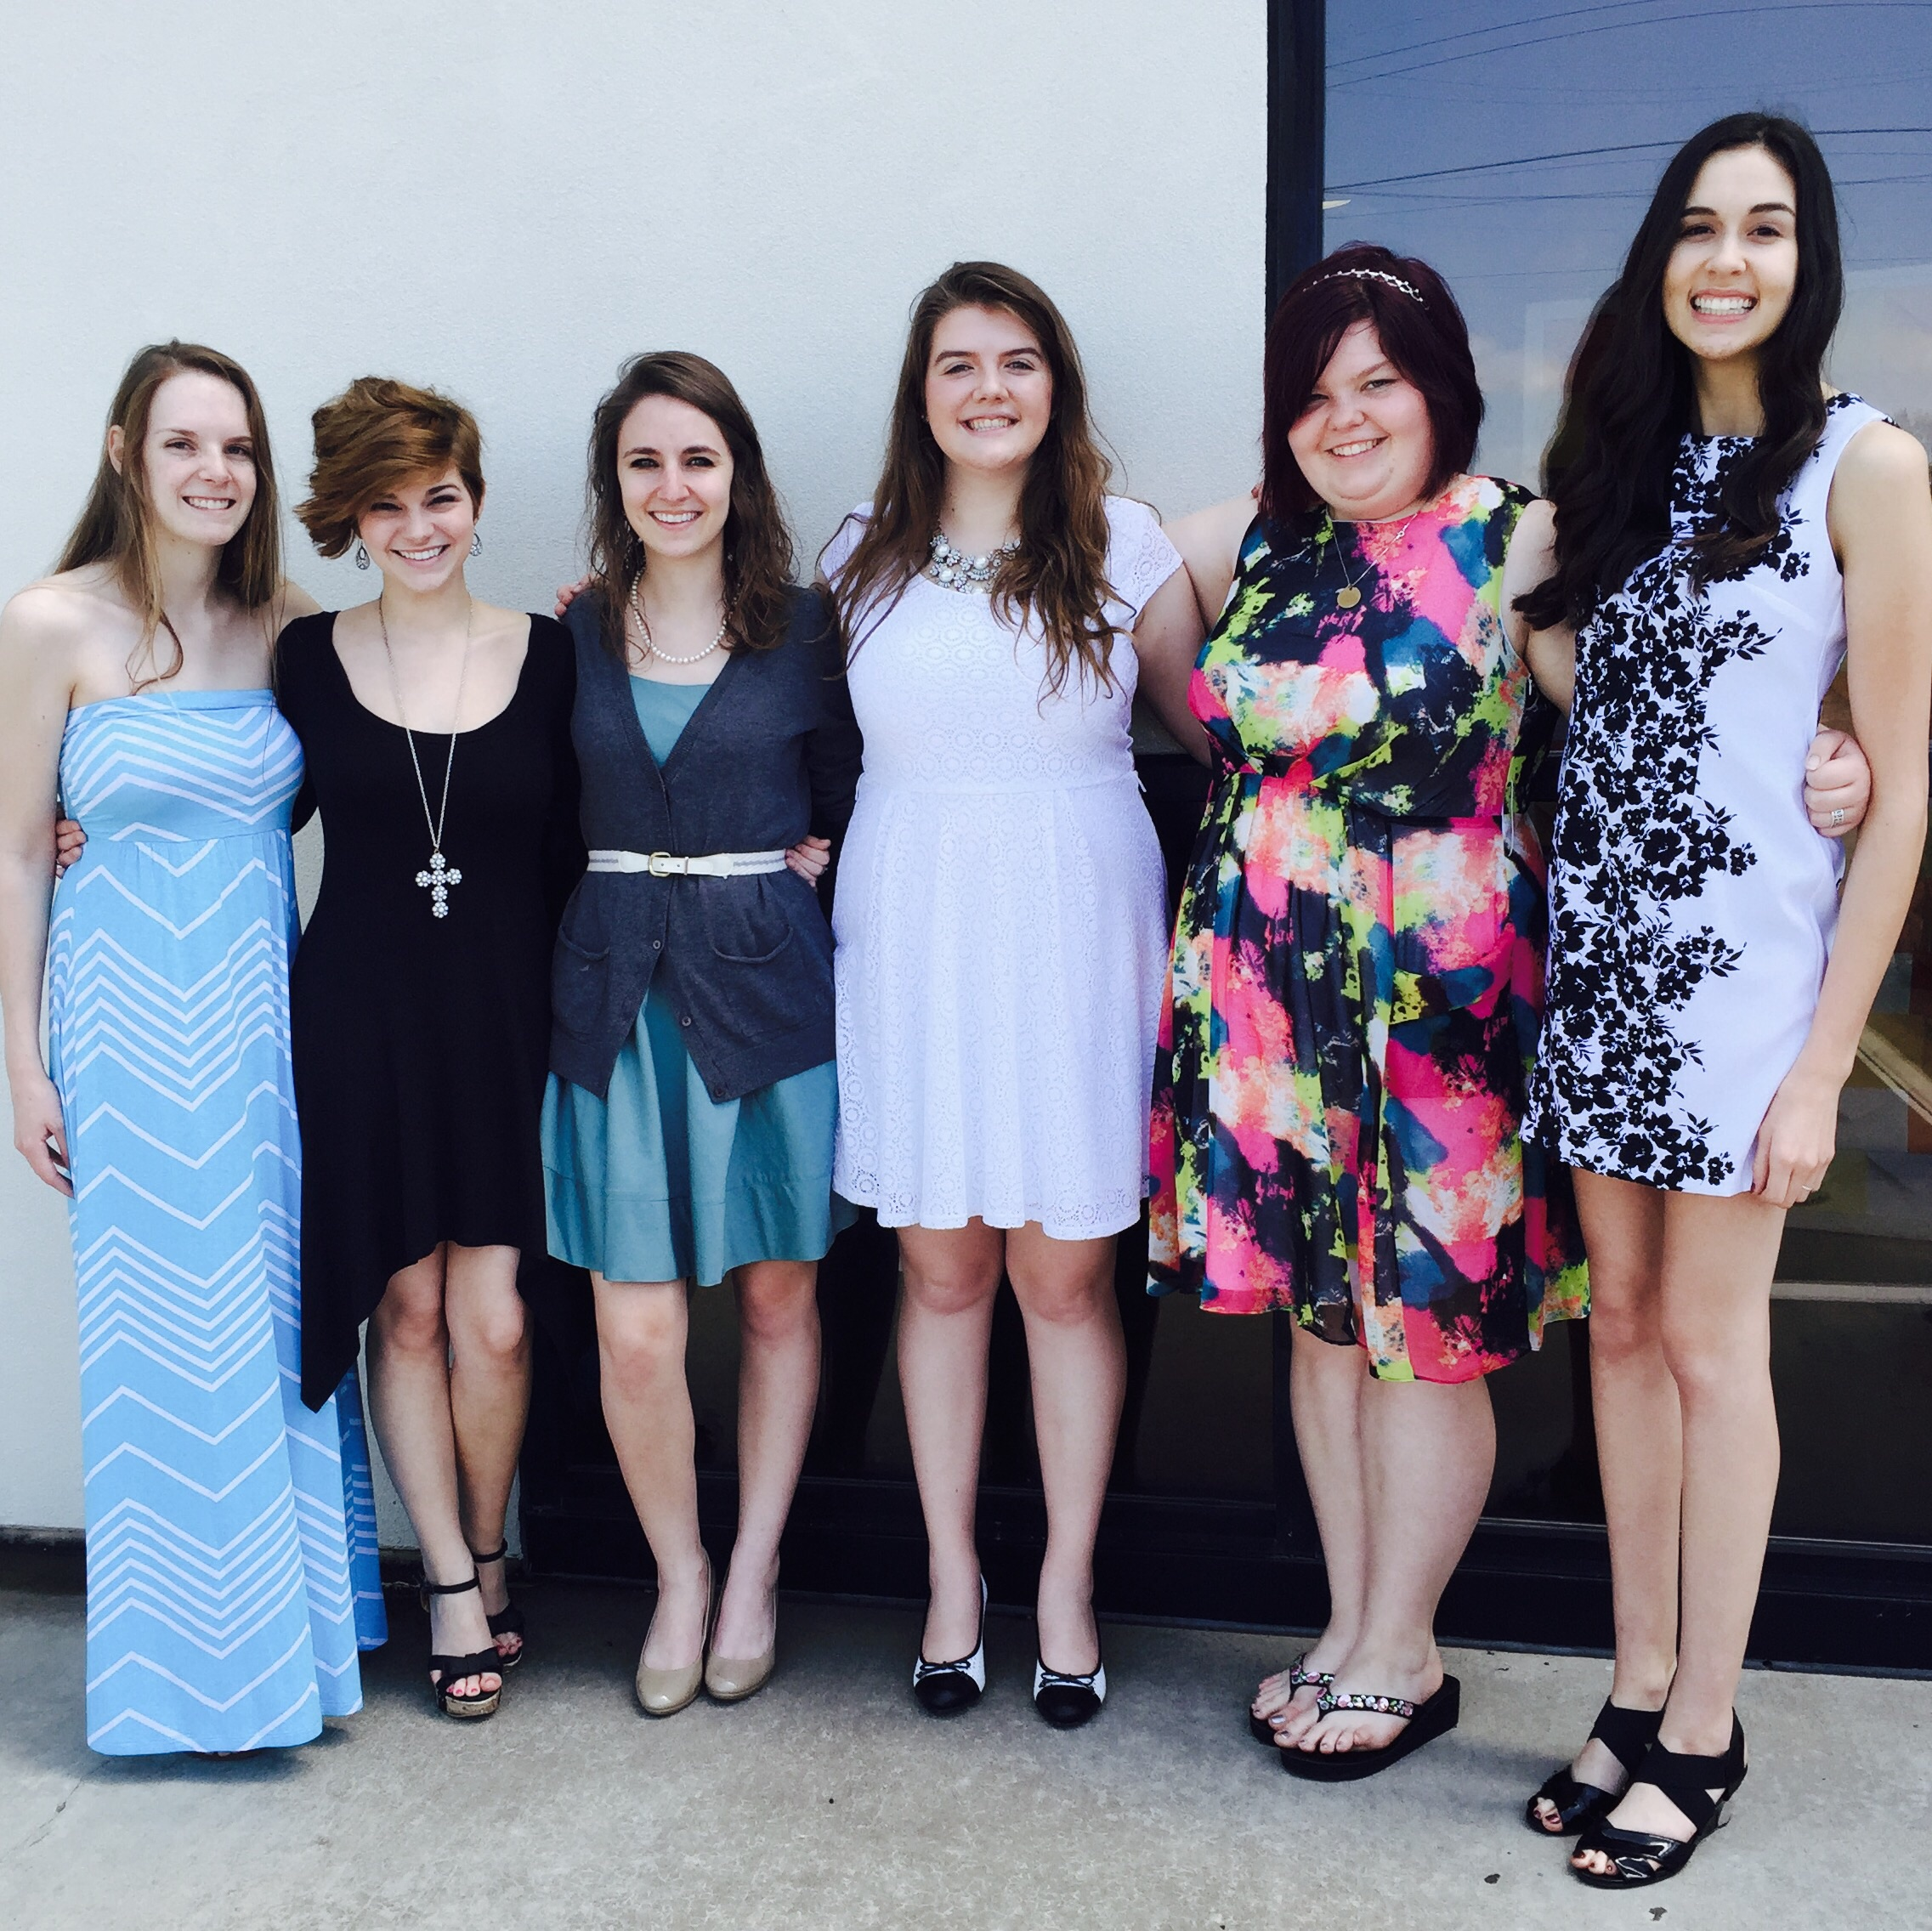 This picture is filled with some of the most wonderful people you will every meet. These ladies are my heroes.